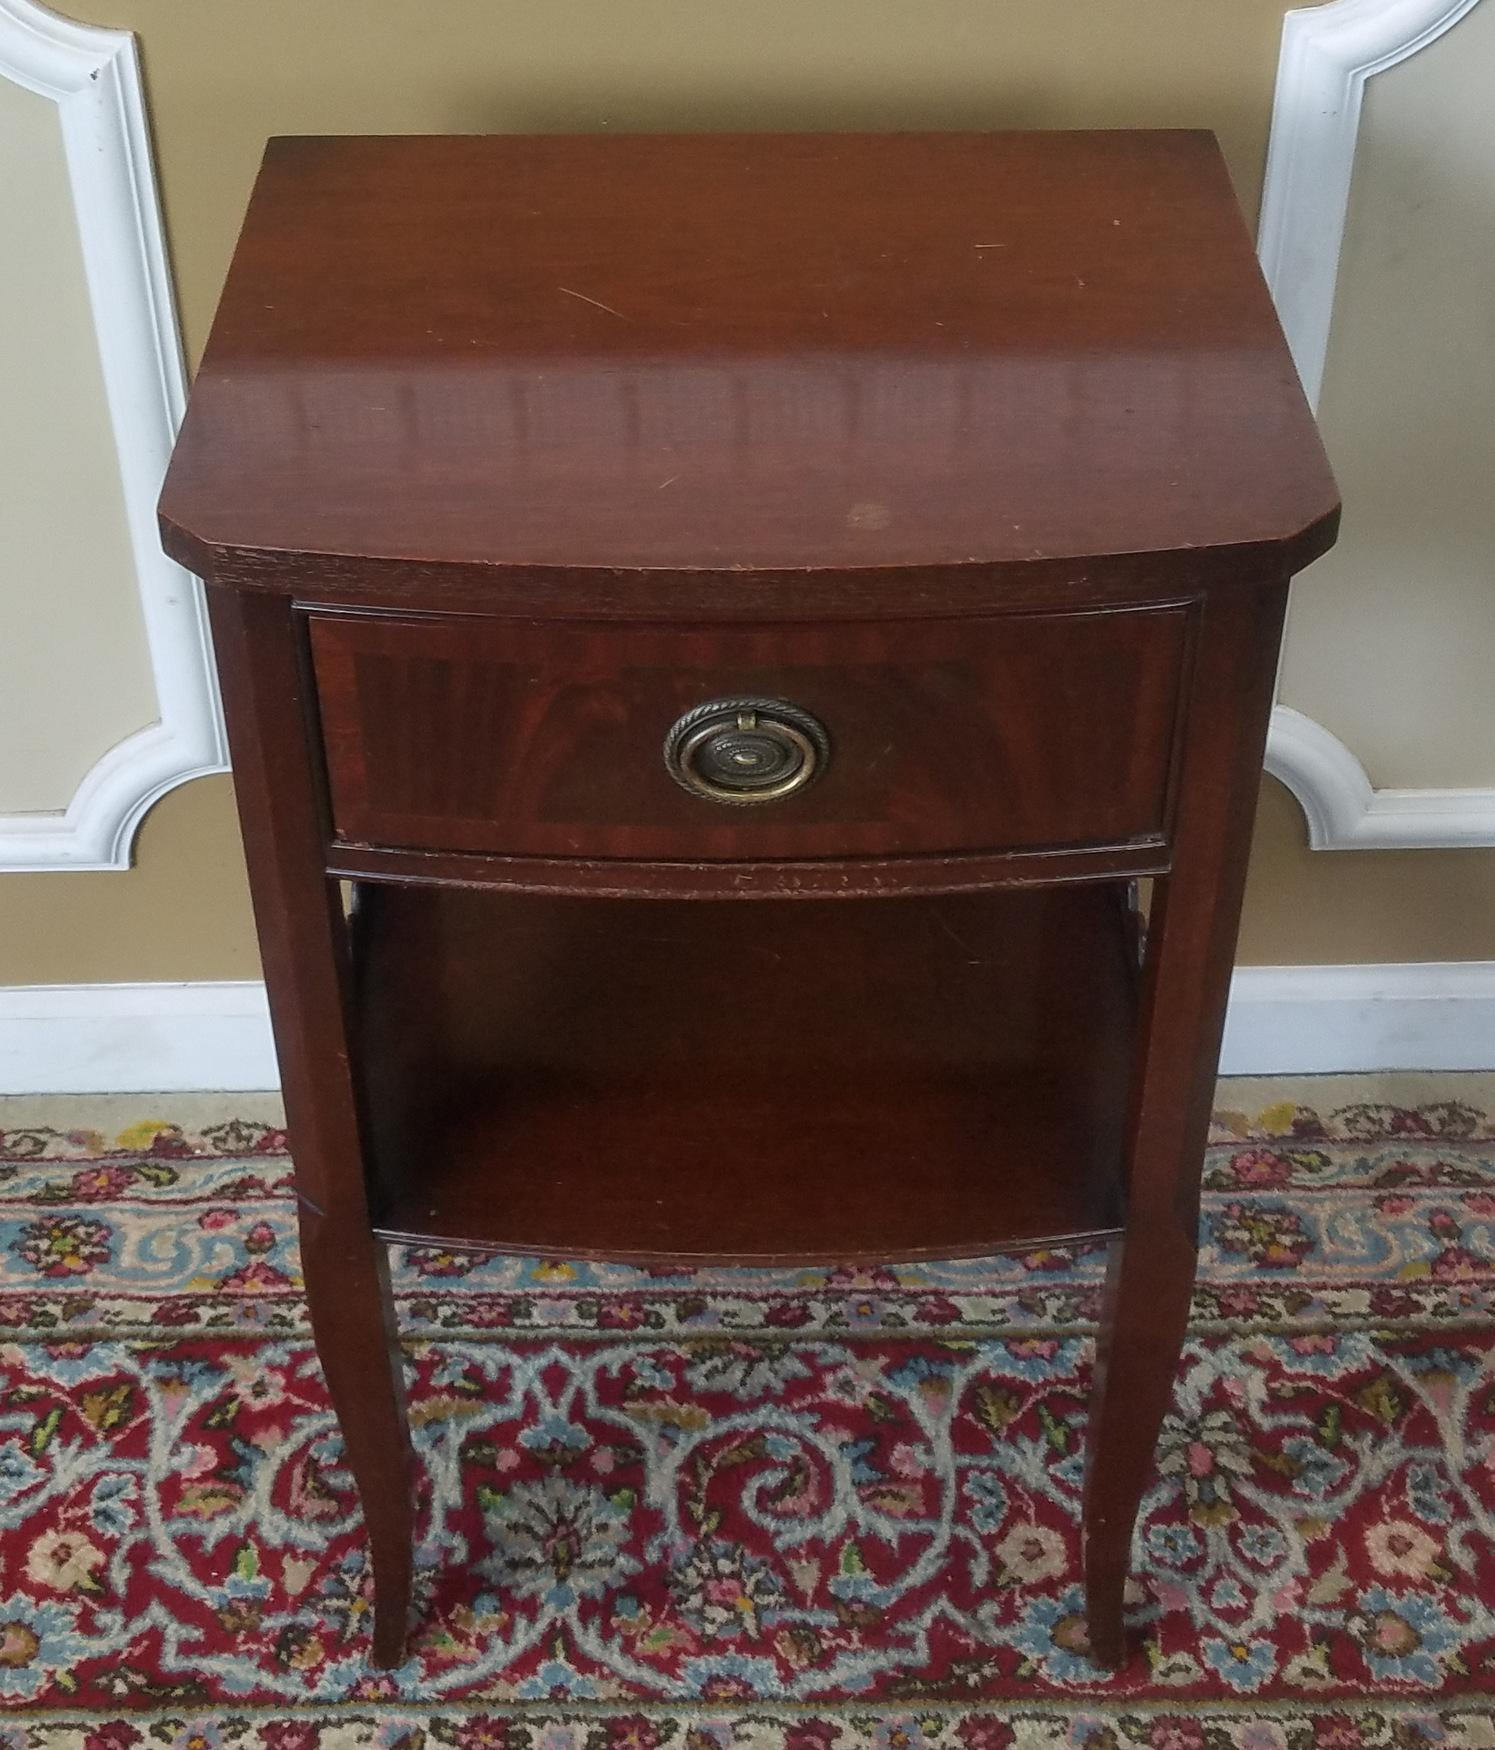 Rway Northern Furniture Co Mahogany Sheraton Style Bedroom Nightstand    Image 5 Of 8